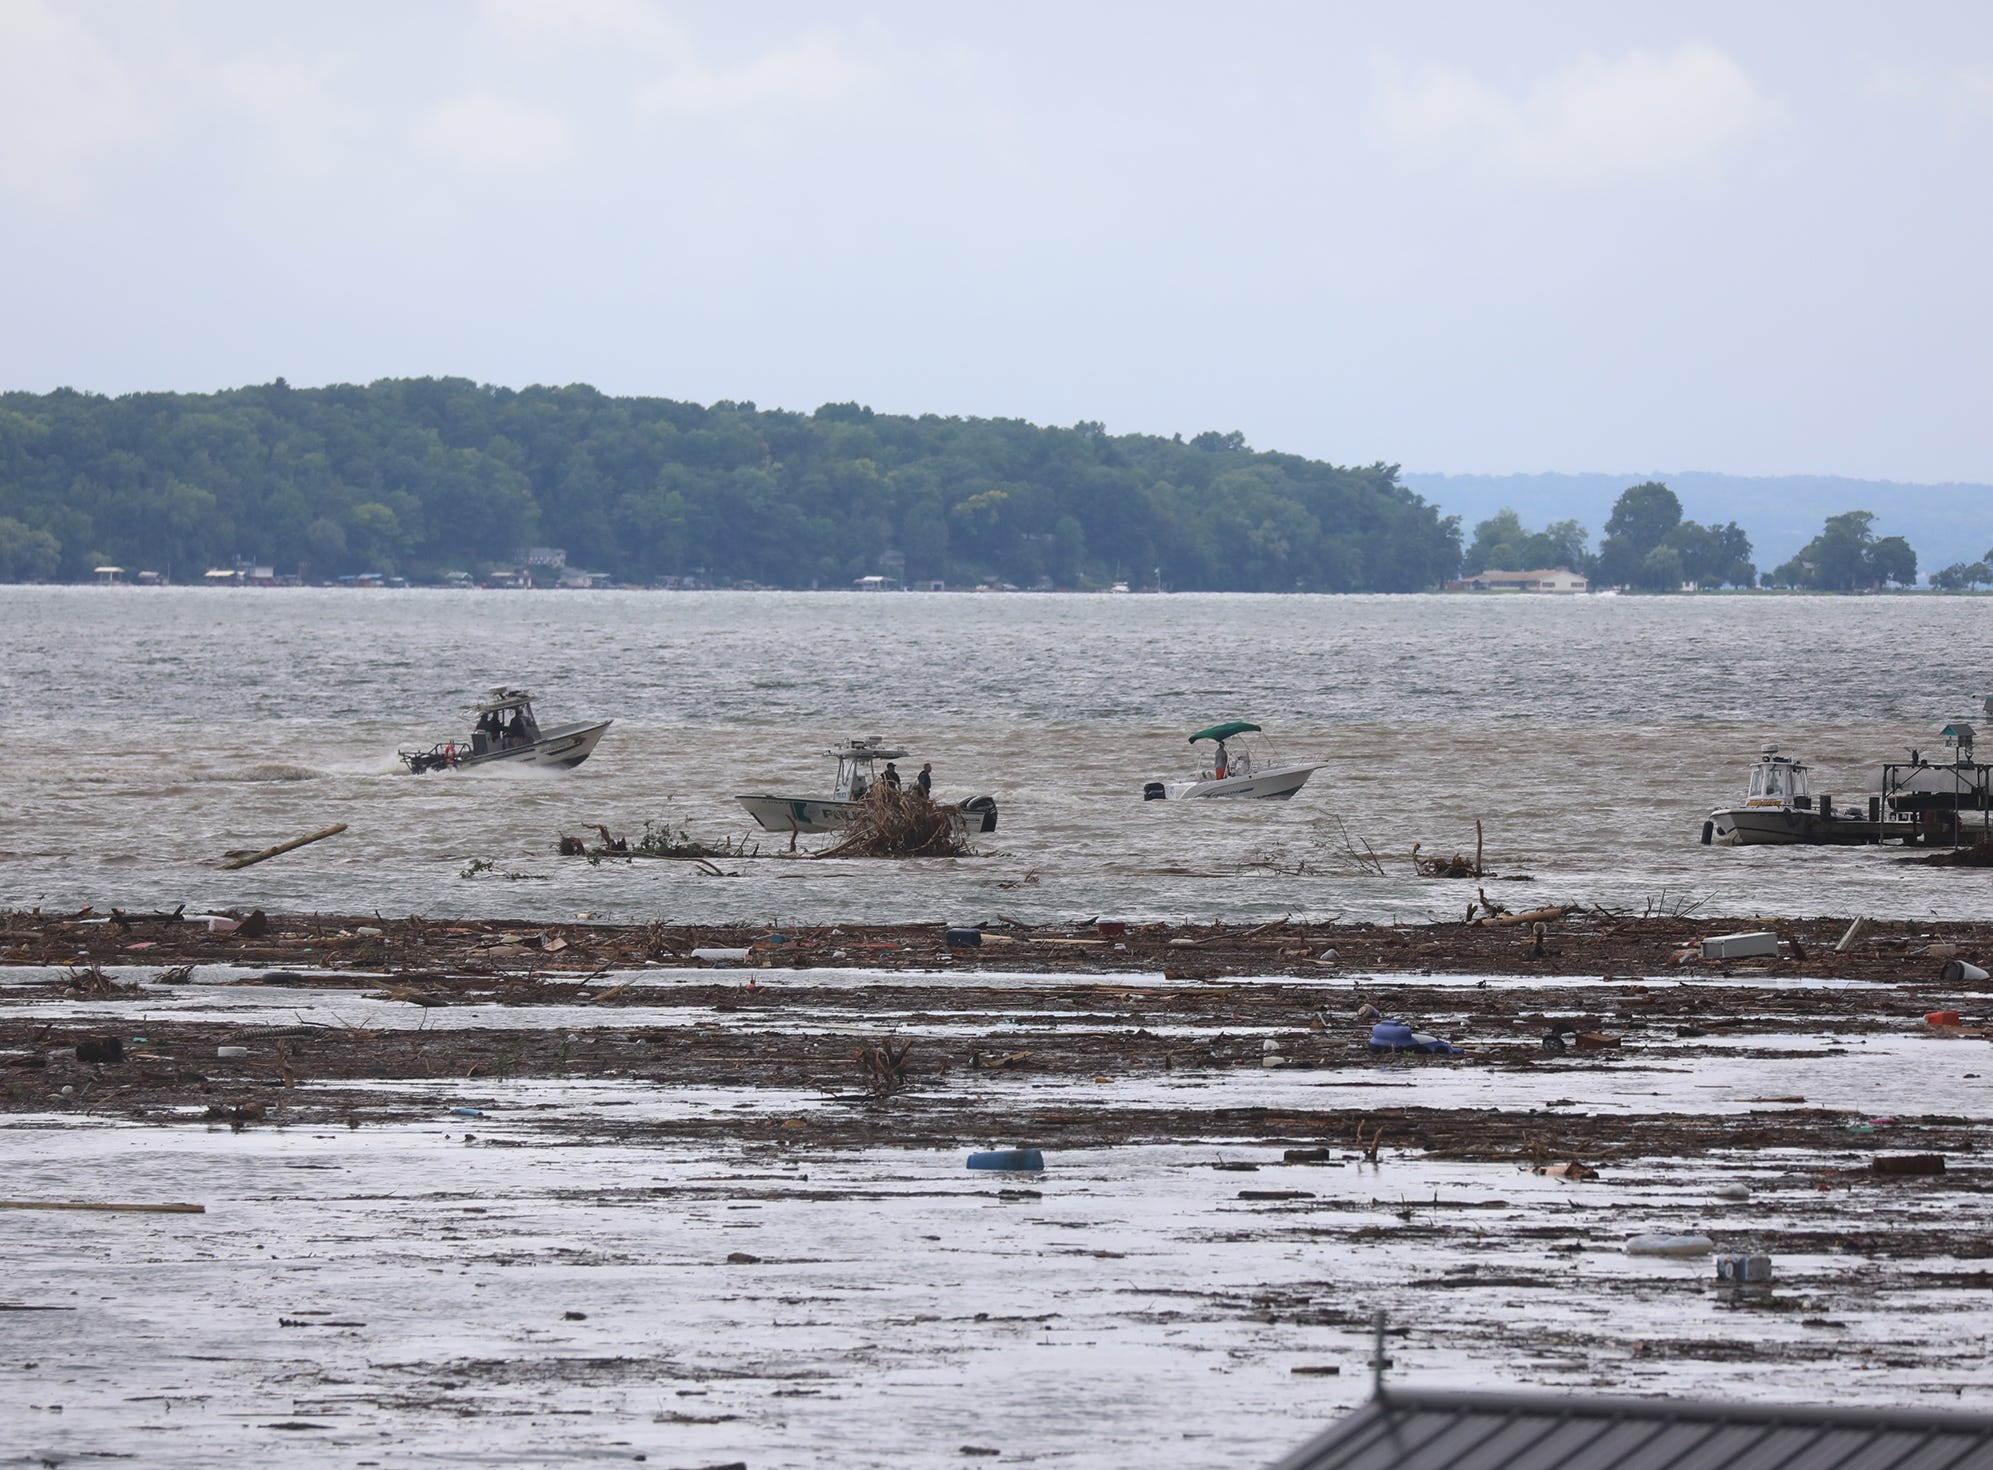 Several boats head to Lodi Point to evacuate people after heavy rain caused flooding and washing away at Lodi Point, New York on Tuesday, August 14, 2018.